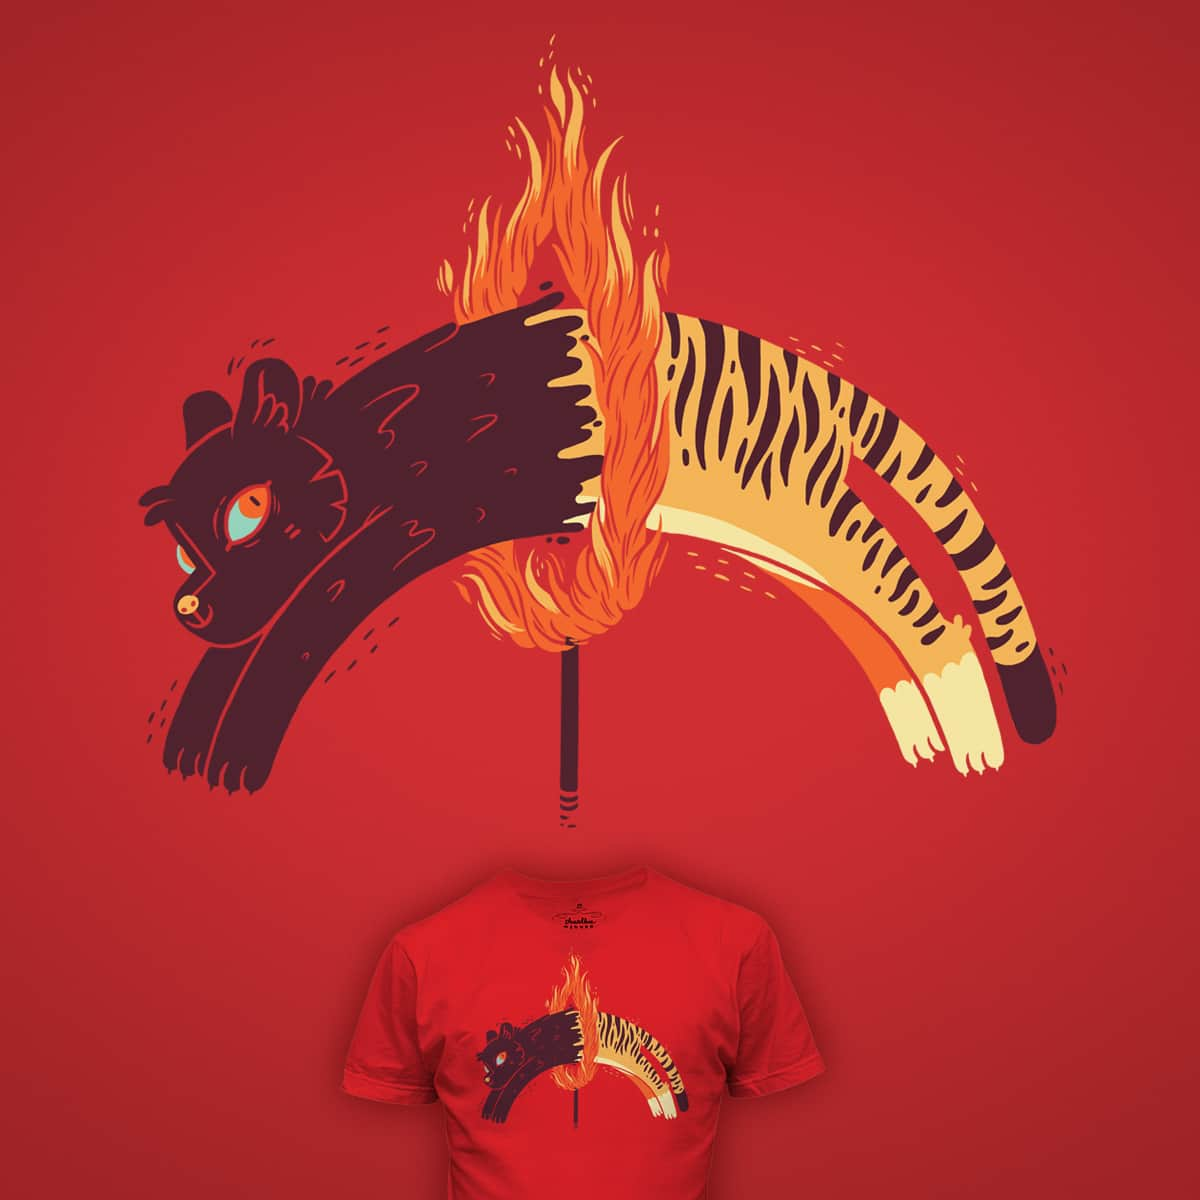 Pouncing Through Fire by TheInfamousBaka on Threadless